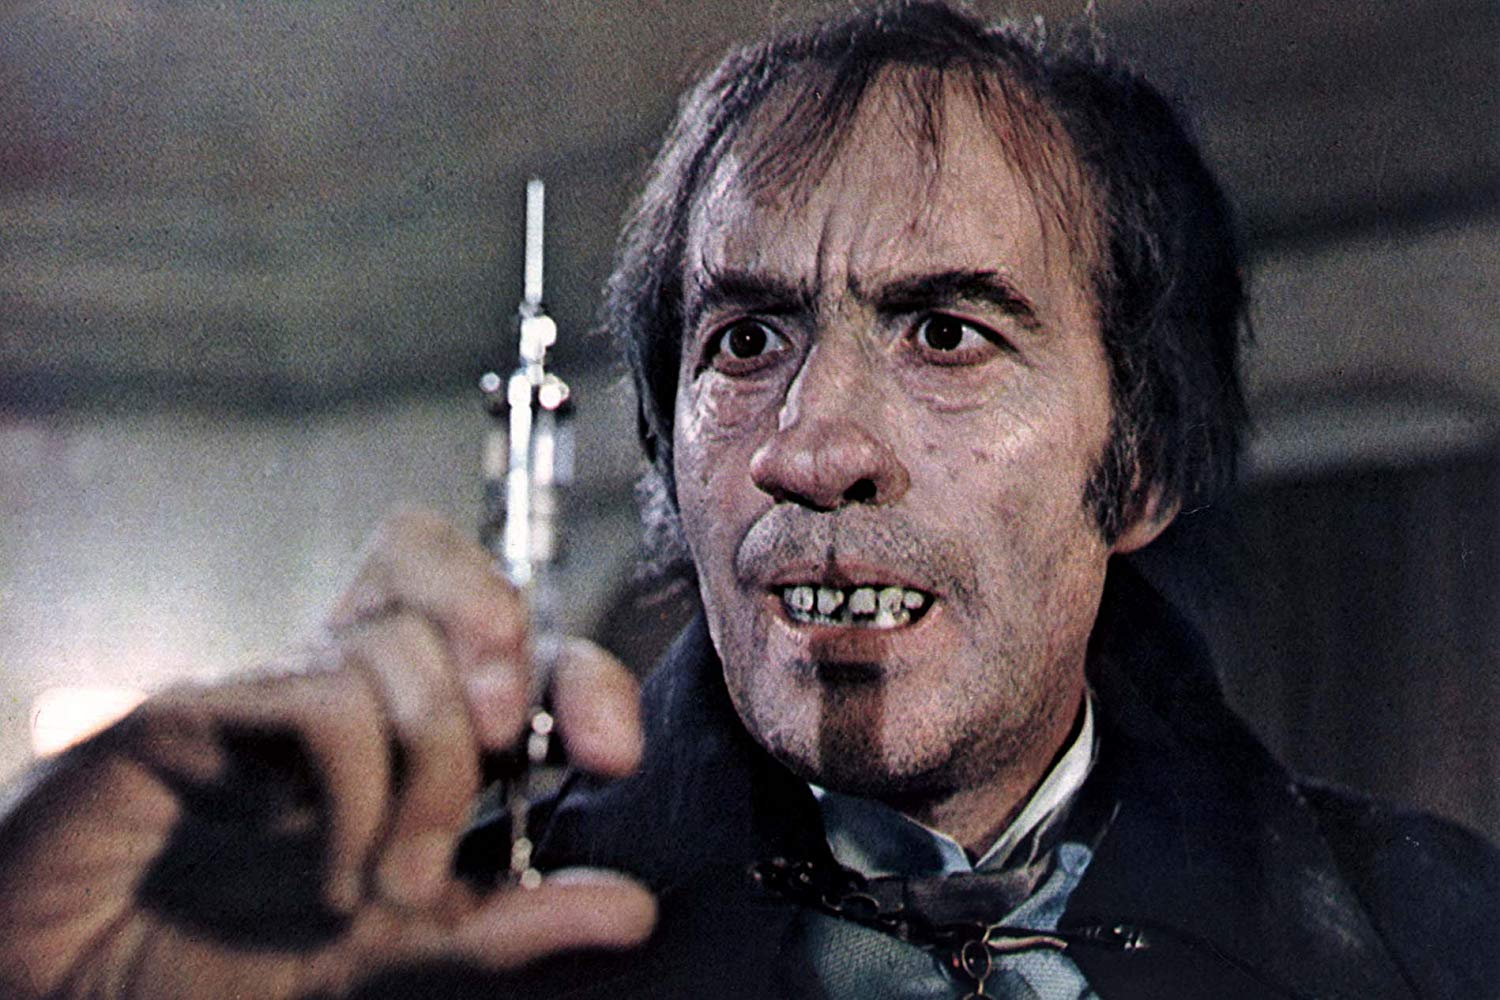 Christopher Lee as Dr Charles Marlowe/Edward Blake (or Dr Jekyll and Mr Hyde) in I, Monster (1971)